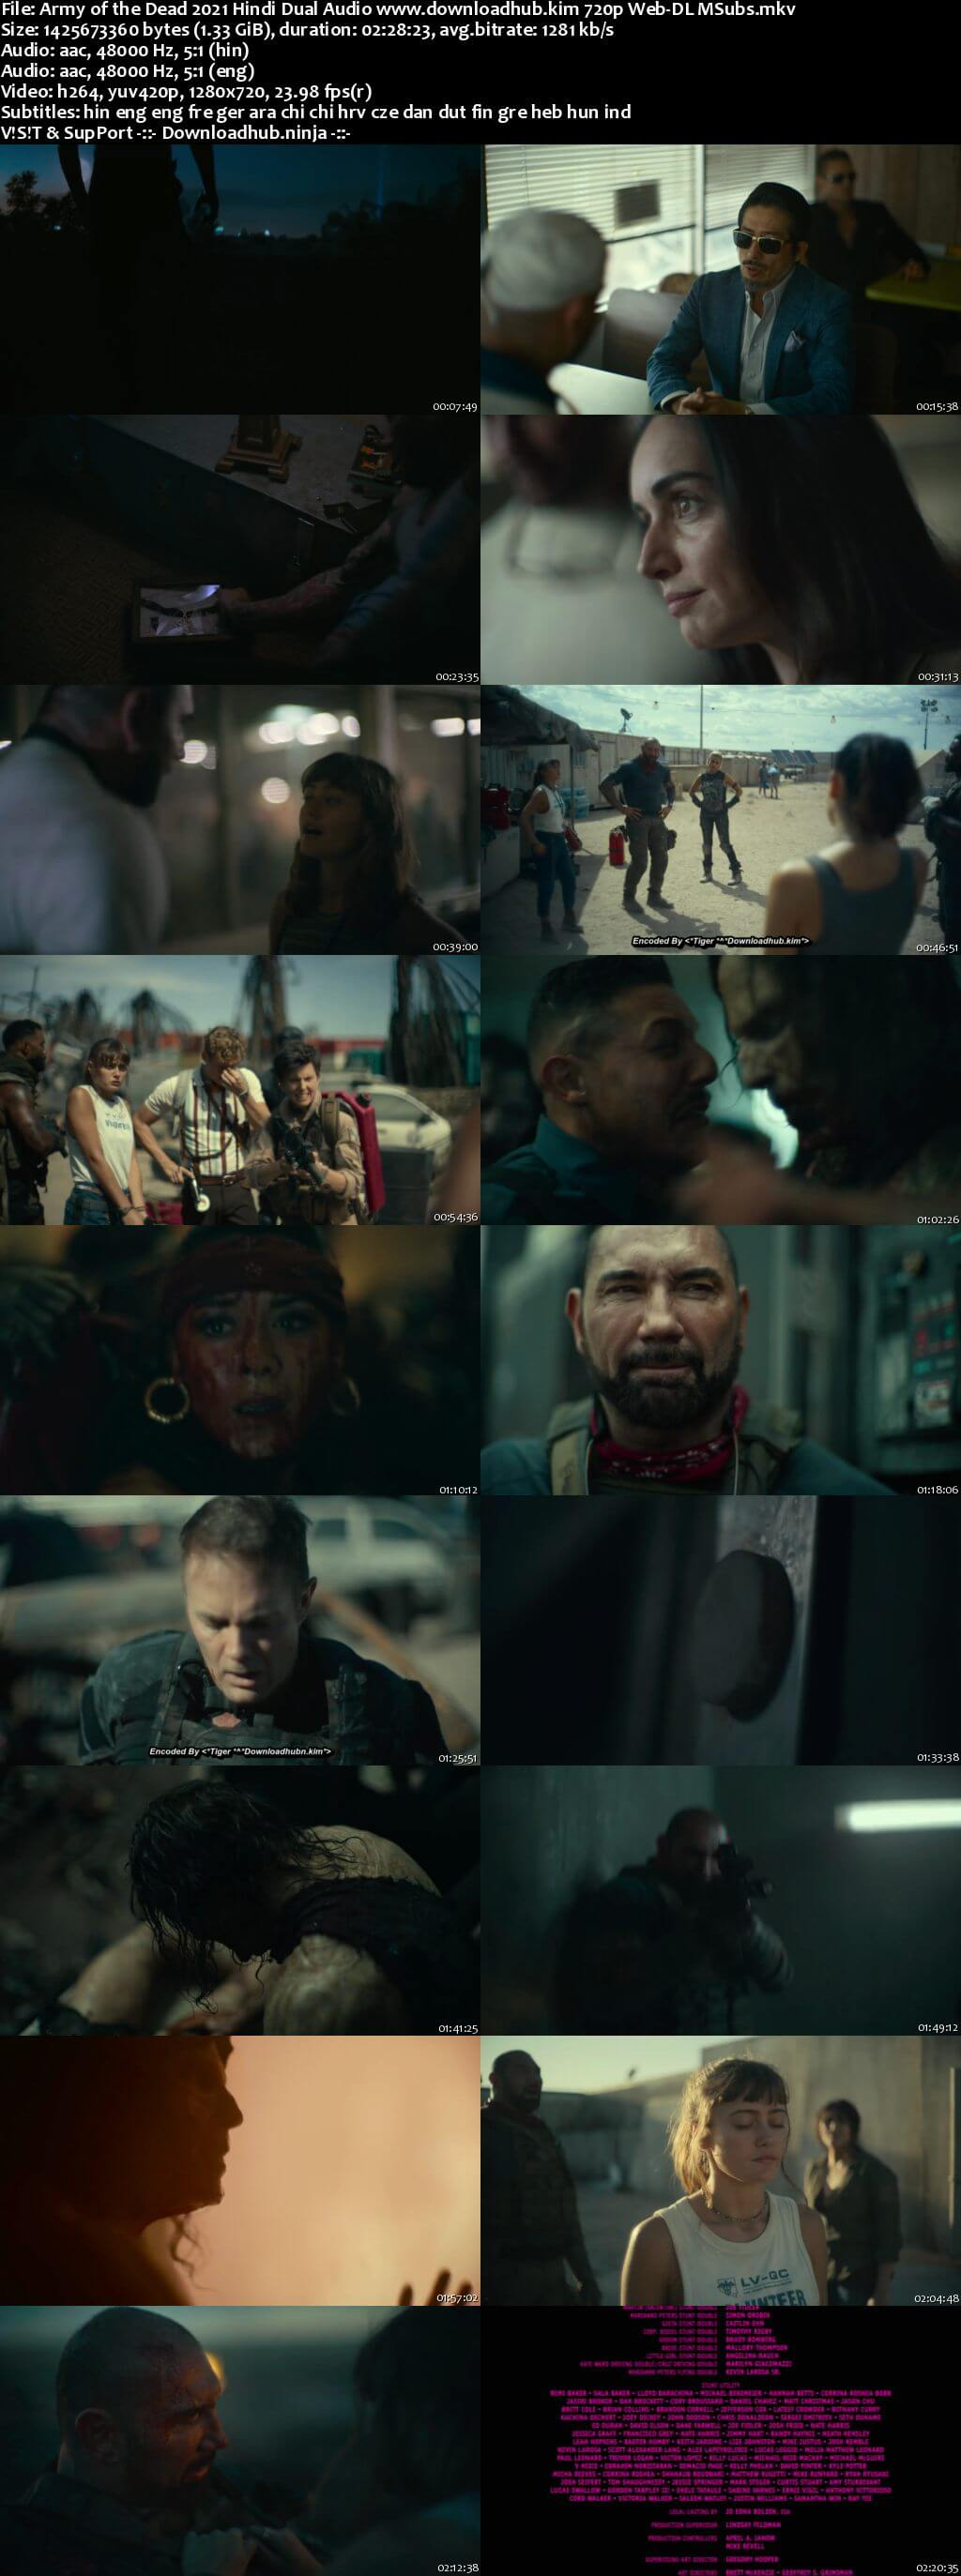 Army of the Dead 2021 Hindi Dual Audio 720p Web-DL MSubs